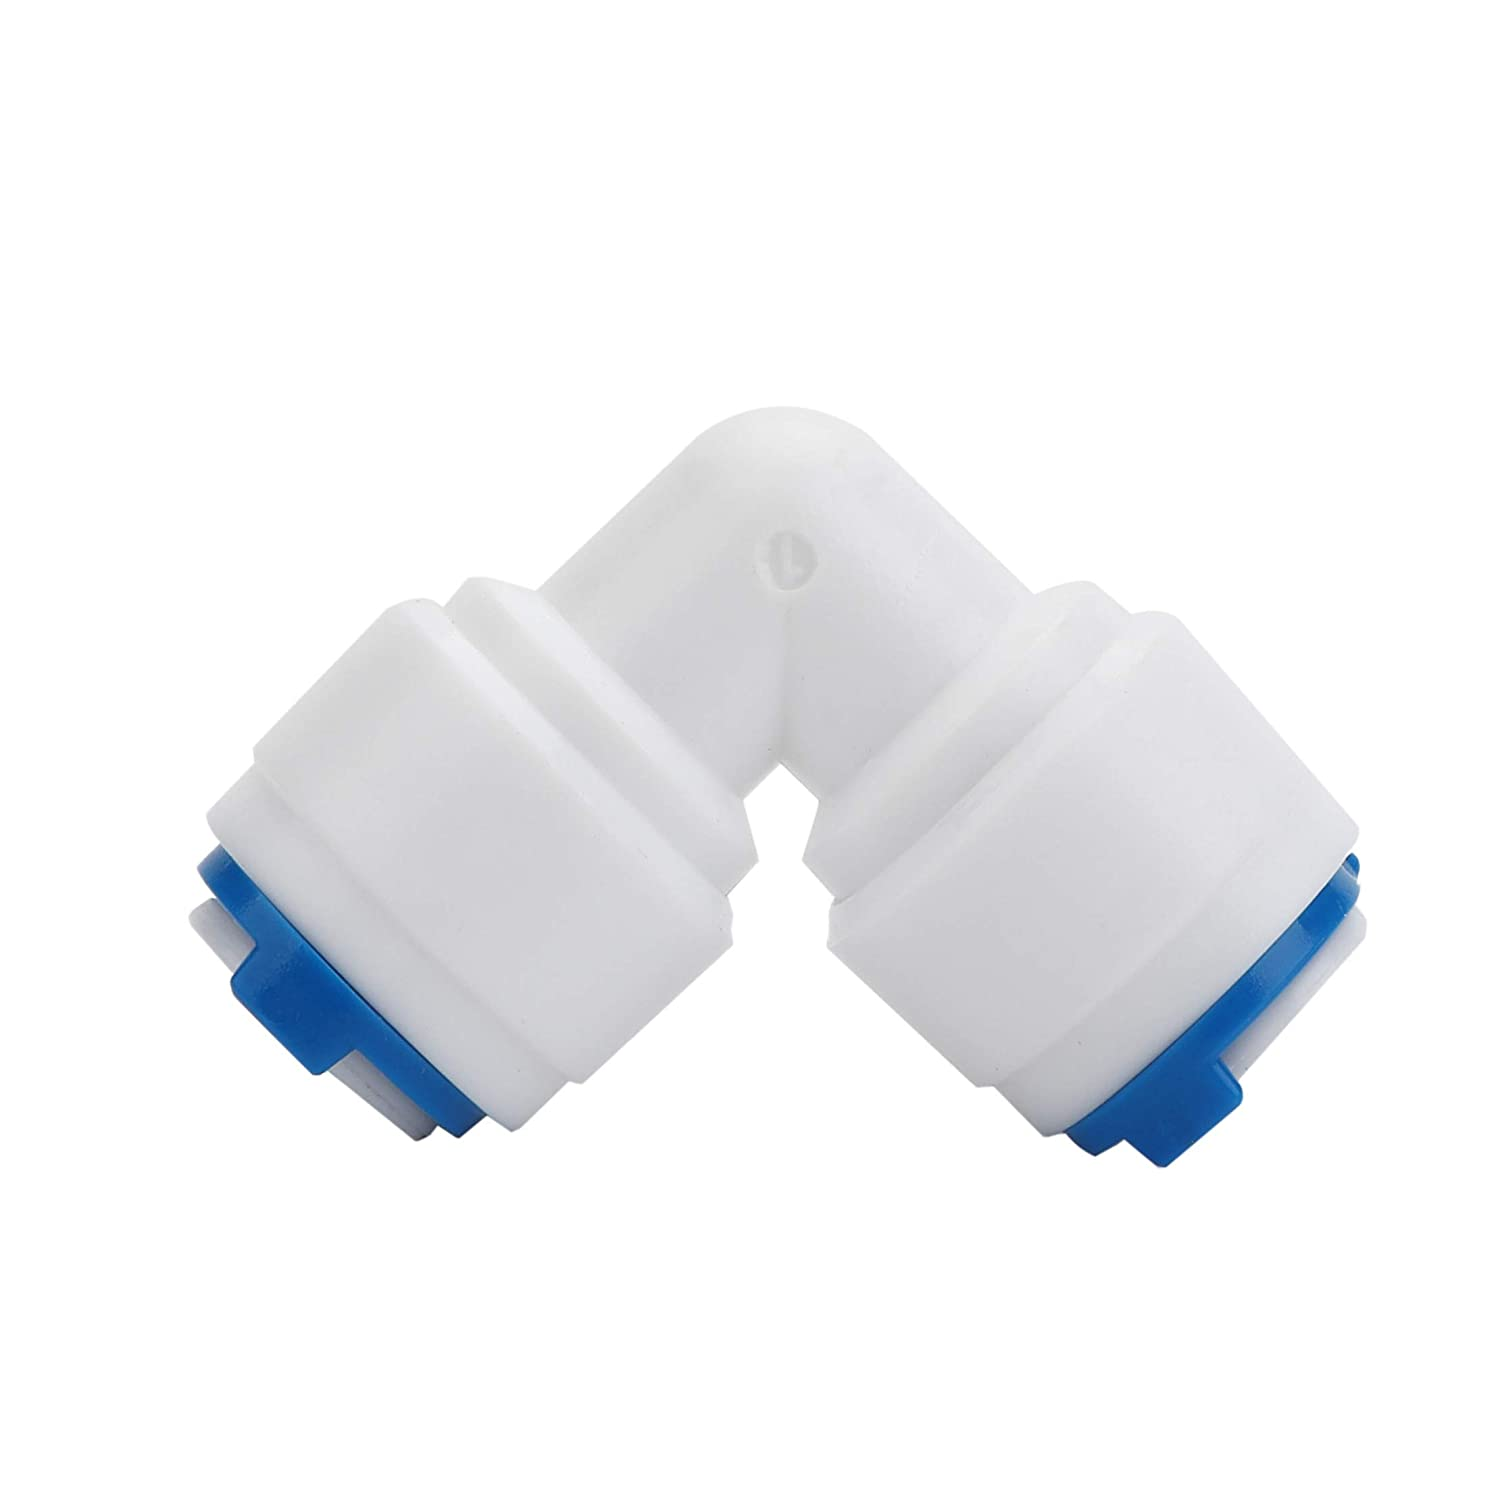 Eowpower 16Pcs 1//4 OD Quick Connect Push in to Connect Water Tube Fitting RO Water Reverse Osmosis Each of 4Pcs